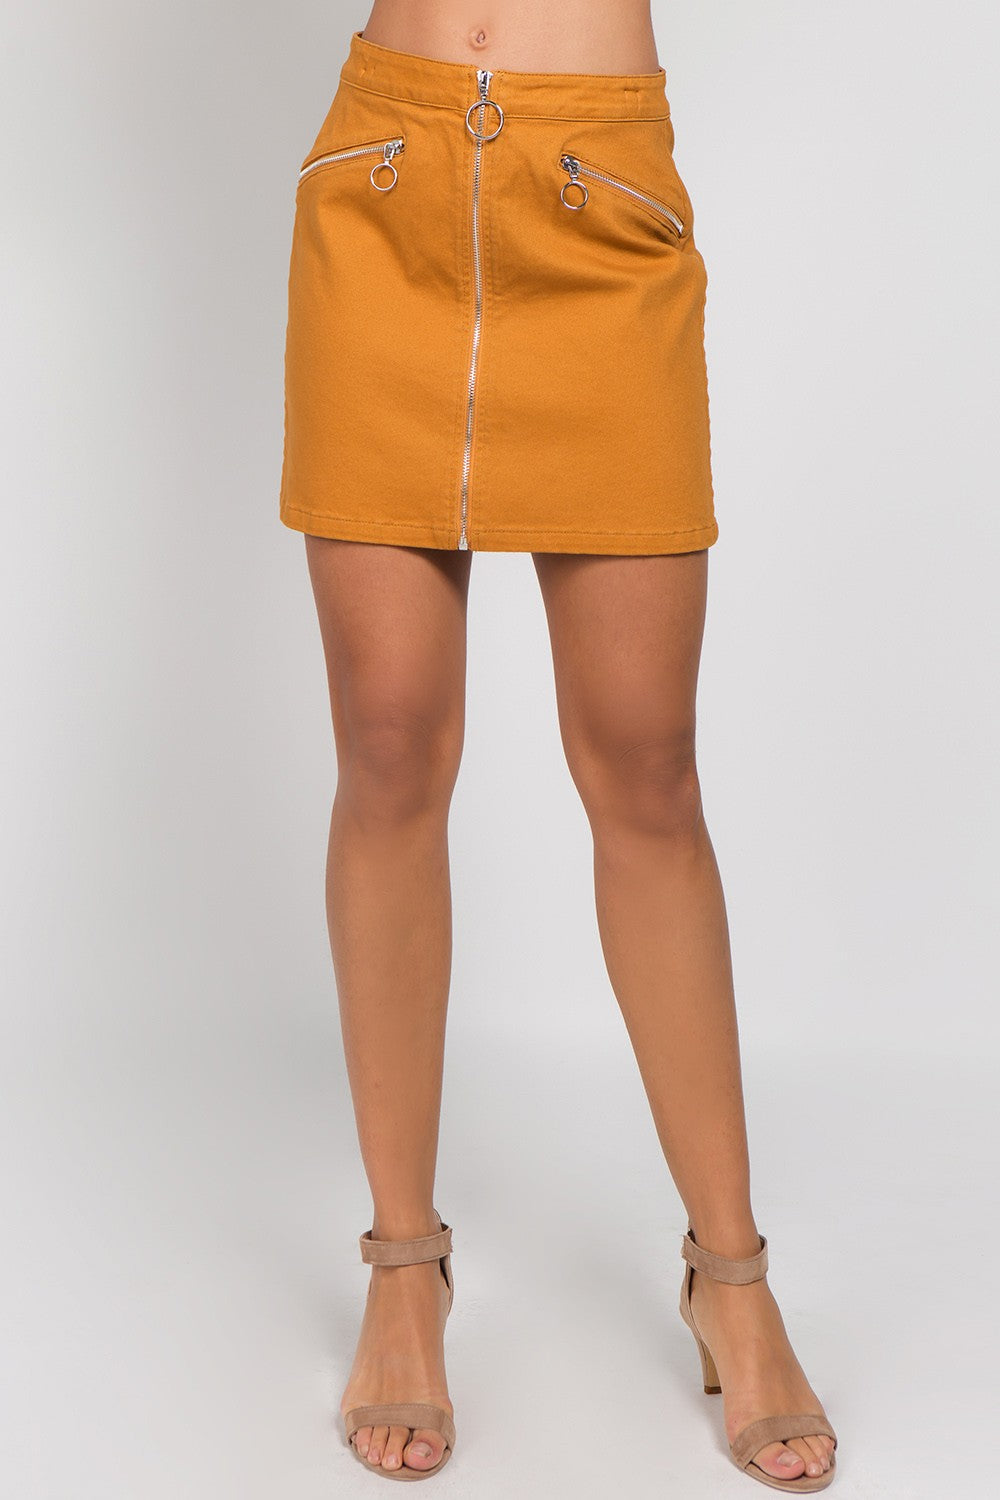 There's Moto Life Skirt in Camel | Necessary Clothing